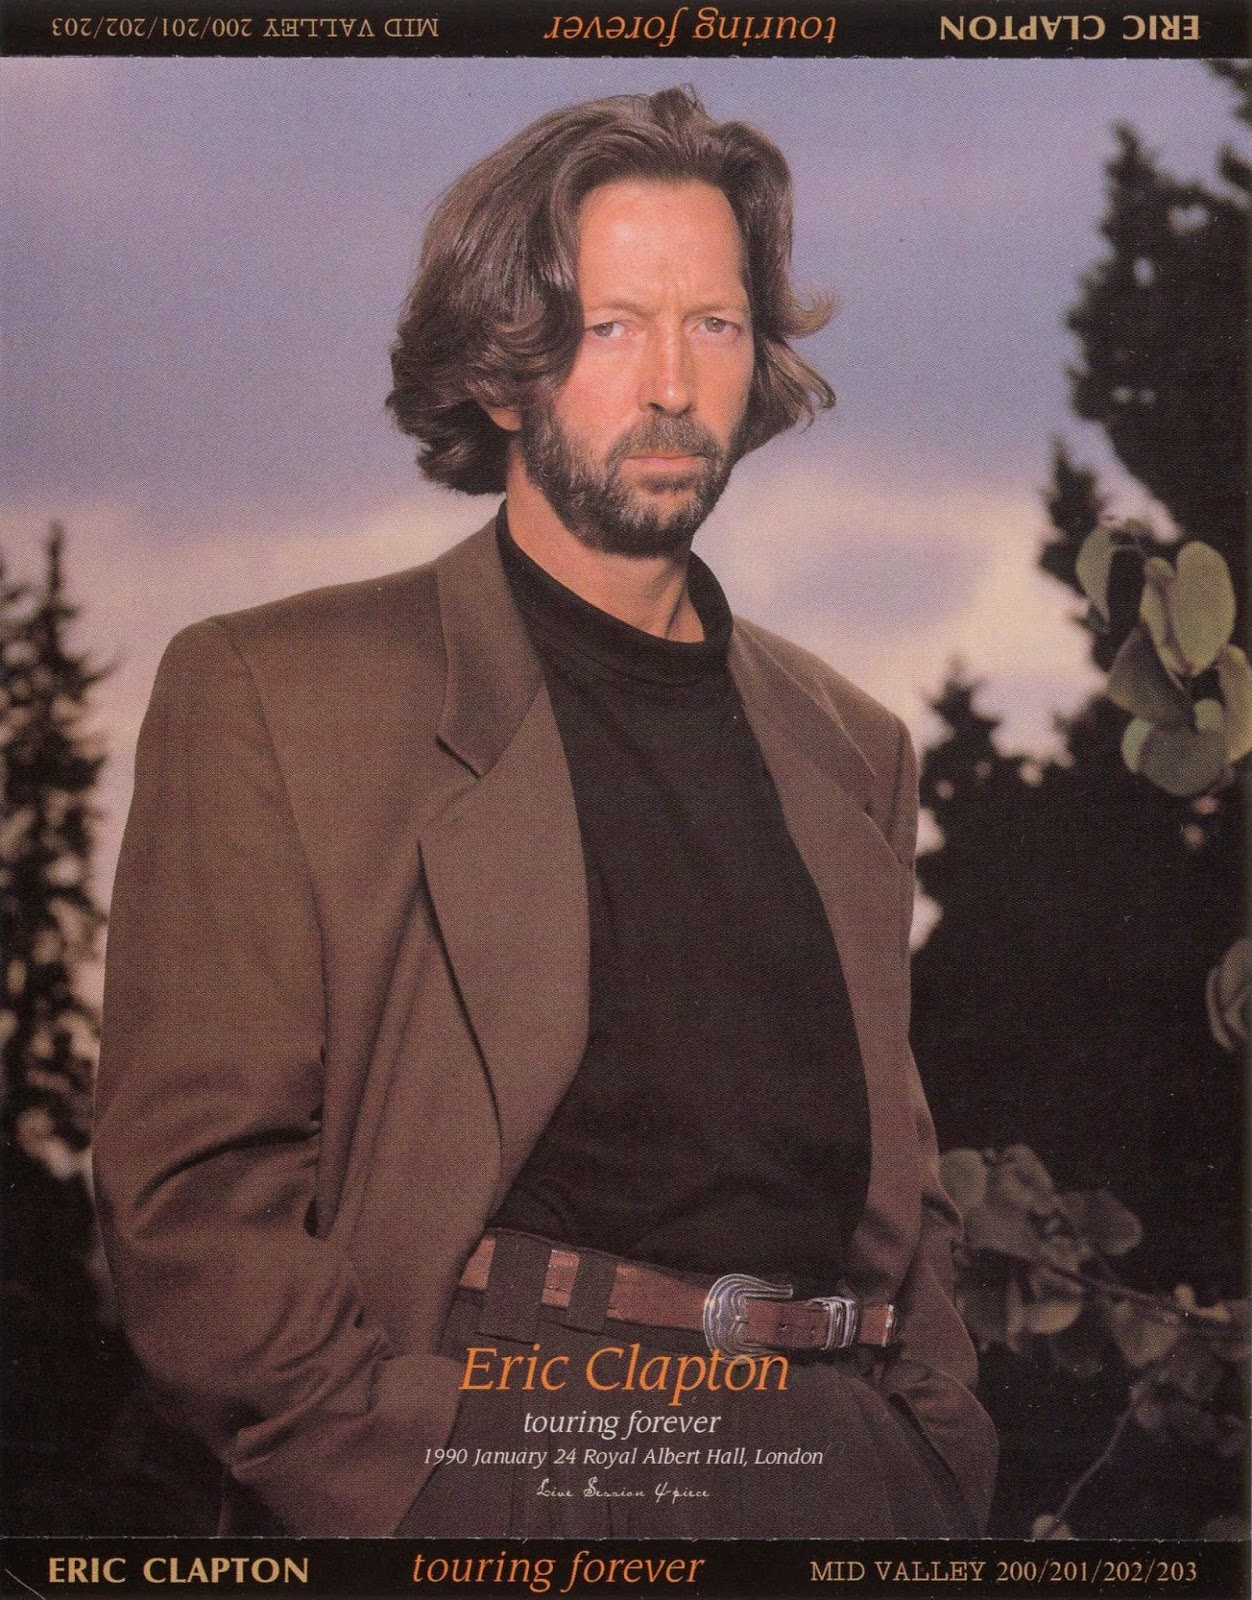 bb chronicles eric clapton 1990 01 24 rah london. Black Bedroom Furniture Sets. Home Design Ideas